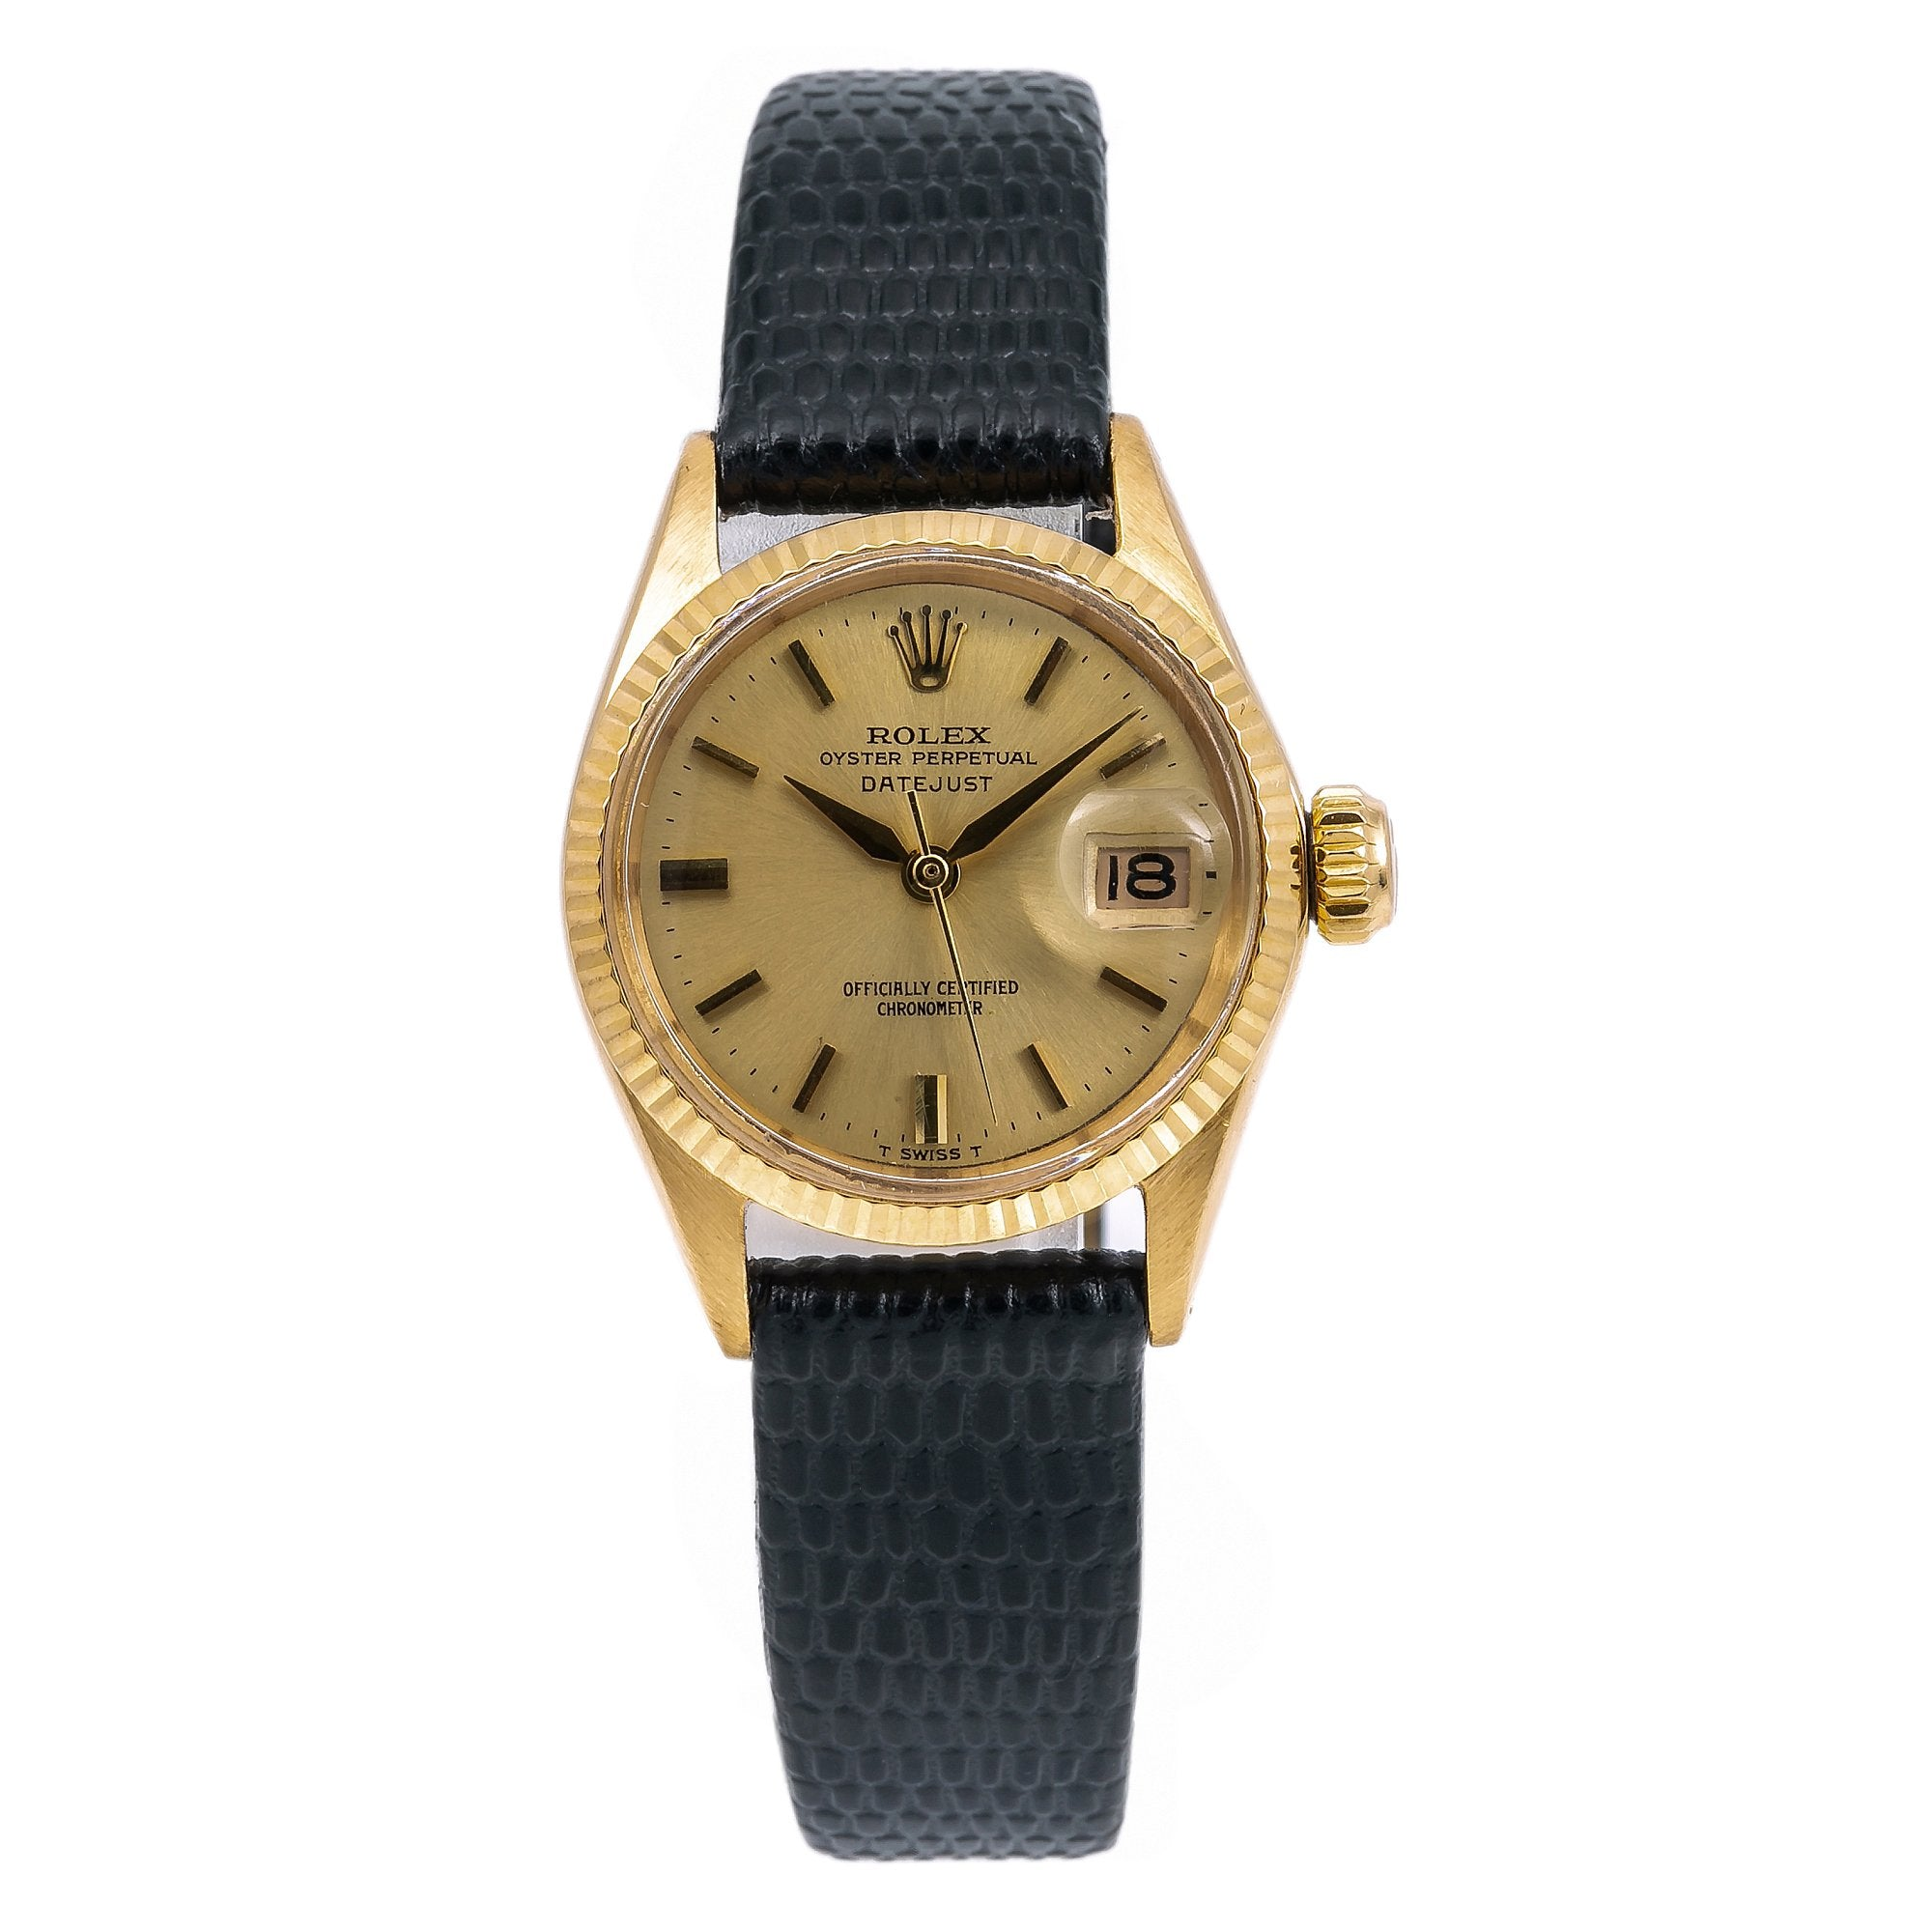 Rolex Datejust 6517 26MM Champagne Dial With Leather Bracelet